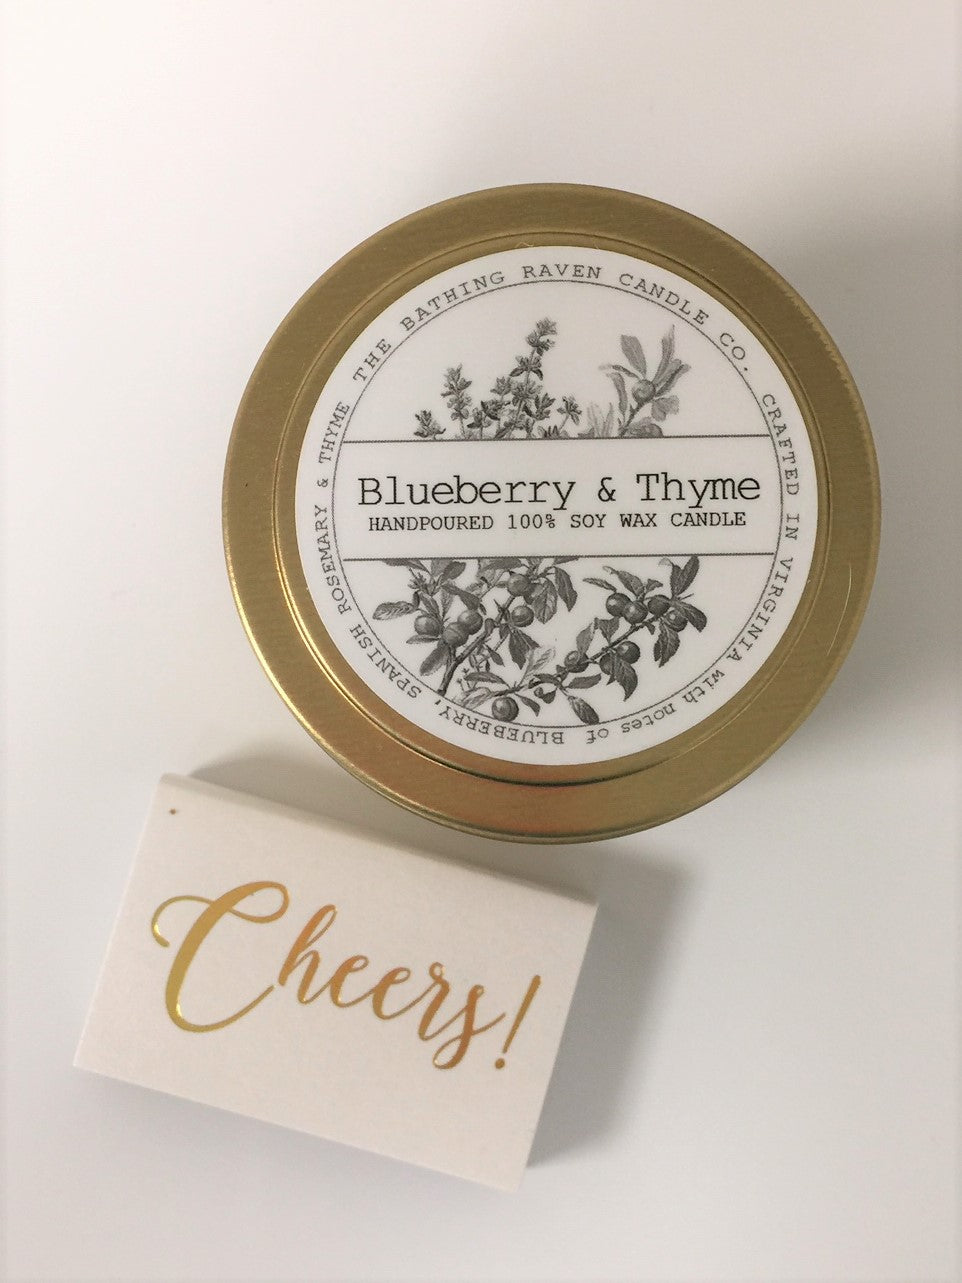 The Bathing Raven Blueberry & Thyme Petite Candle Tin